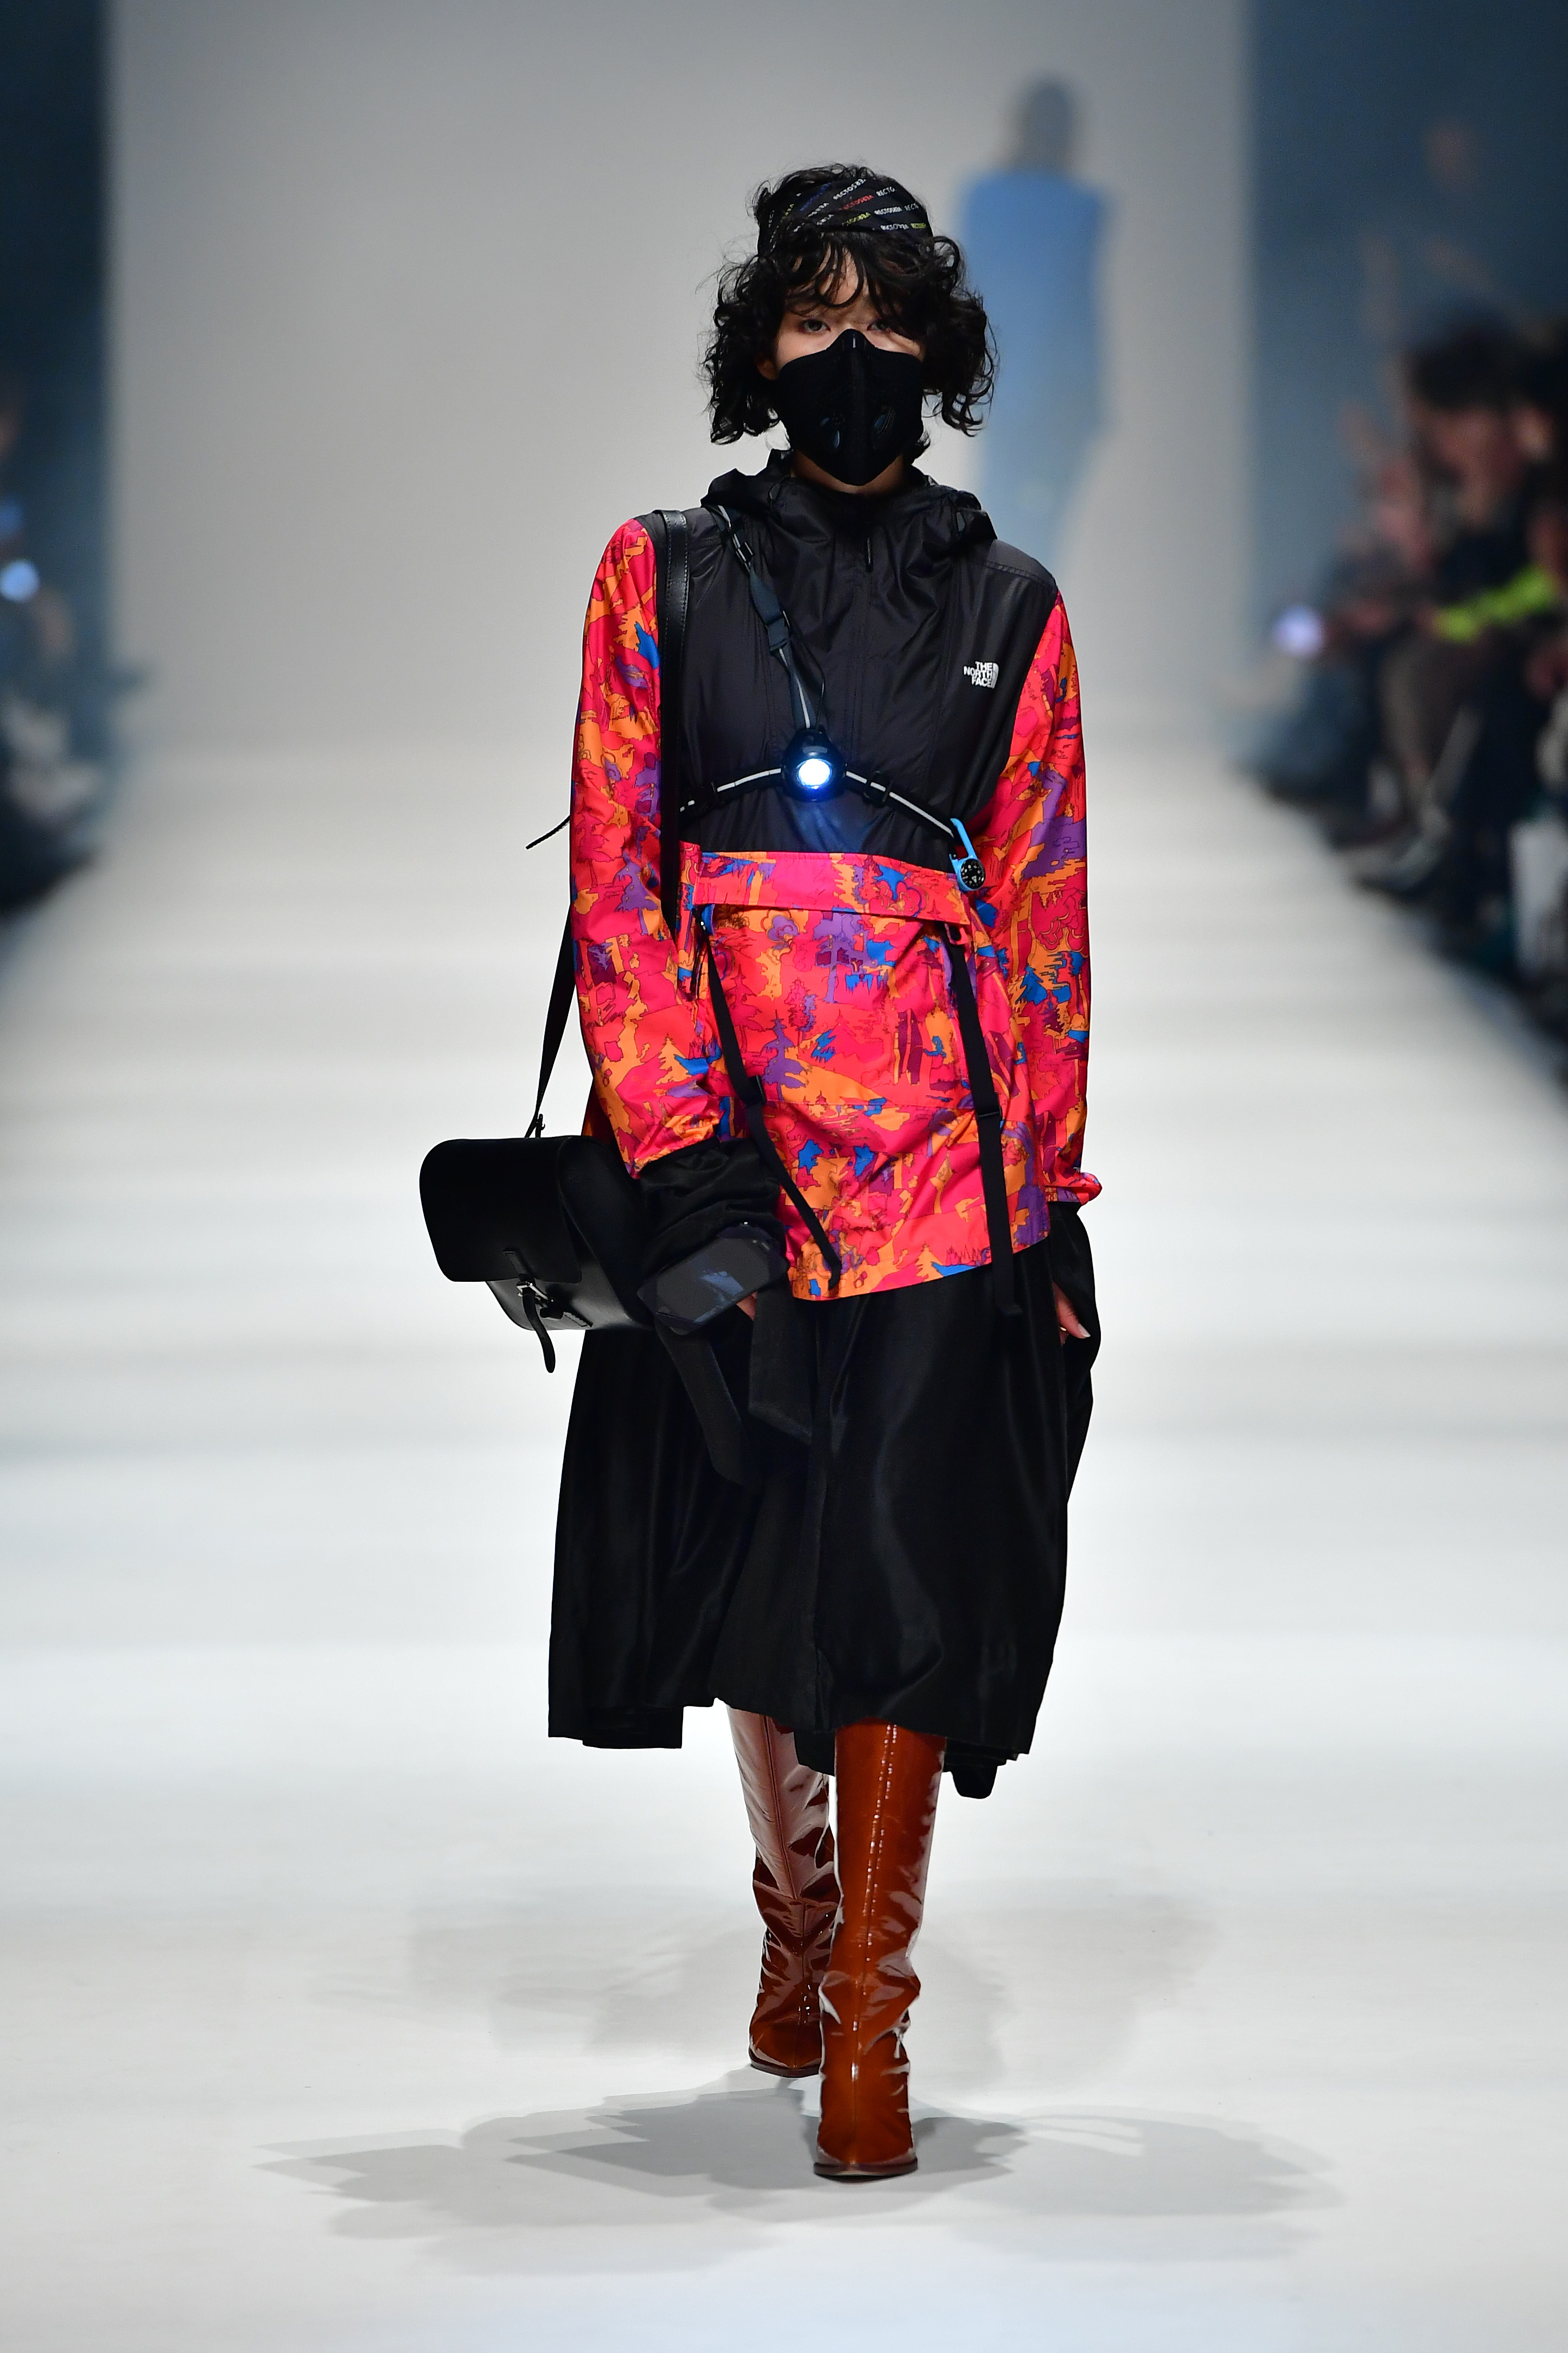 BERLIN, GERMANY - JANUARY 14: A model wearing a jacket by The North Face, dress by Høyem, bag by Ackermann, headband by Recto Verso and shoes by Alinaschuerfeld walks the runway at the Neonyt show during Berlin Fashion Week Autumn/Winter 2020 at Kraftwerk Mitte on January 14, 2020 in Berlin, Germany. (Photo by Alexander Koerner/Getty Images for MBFW)